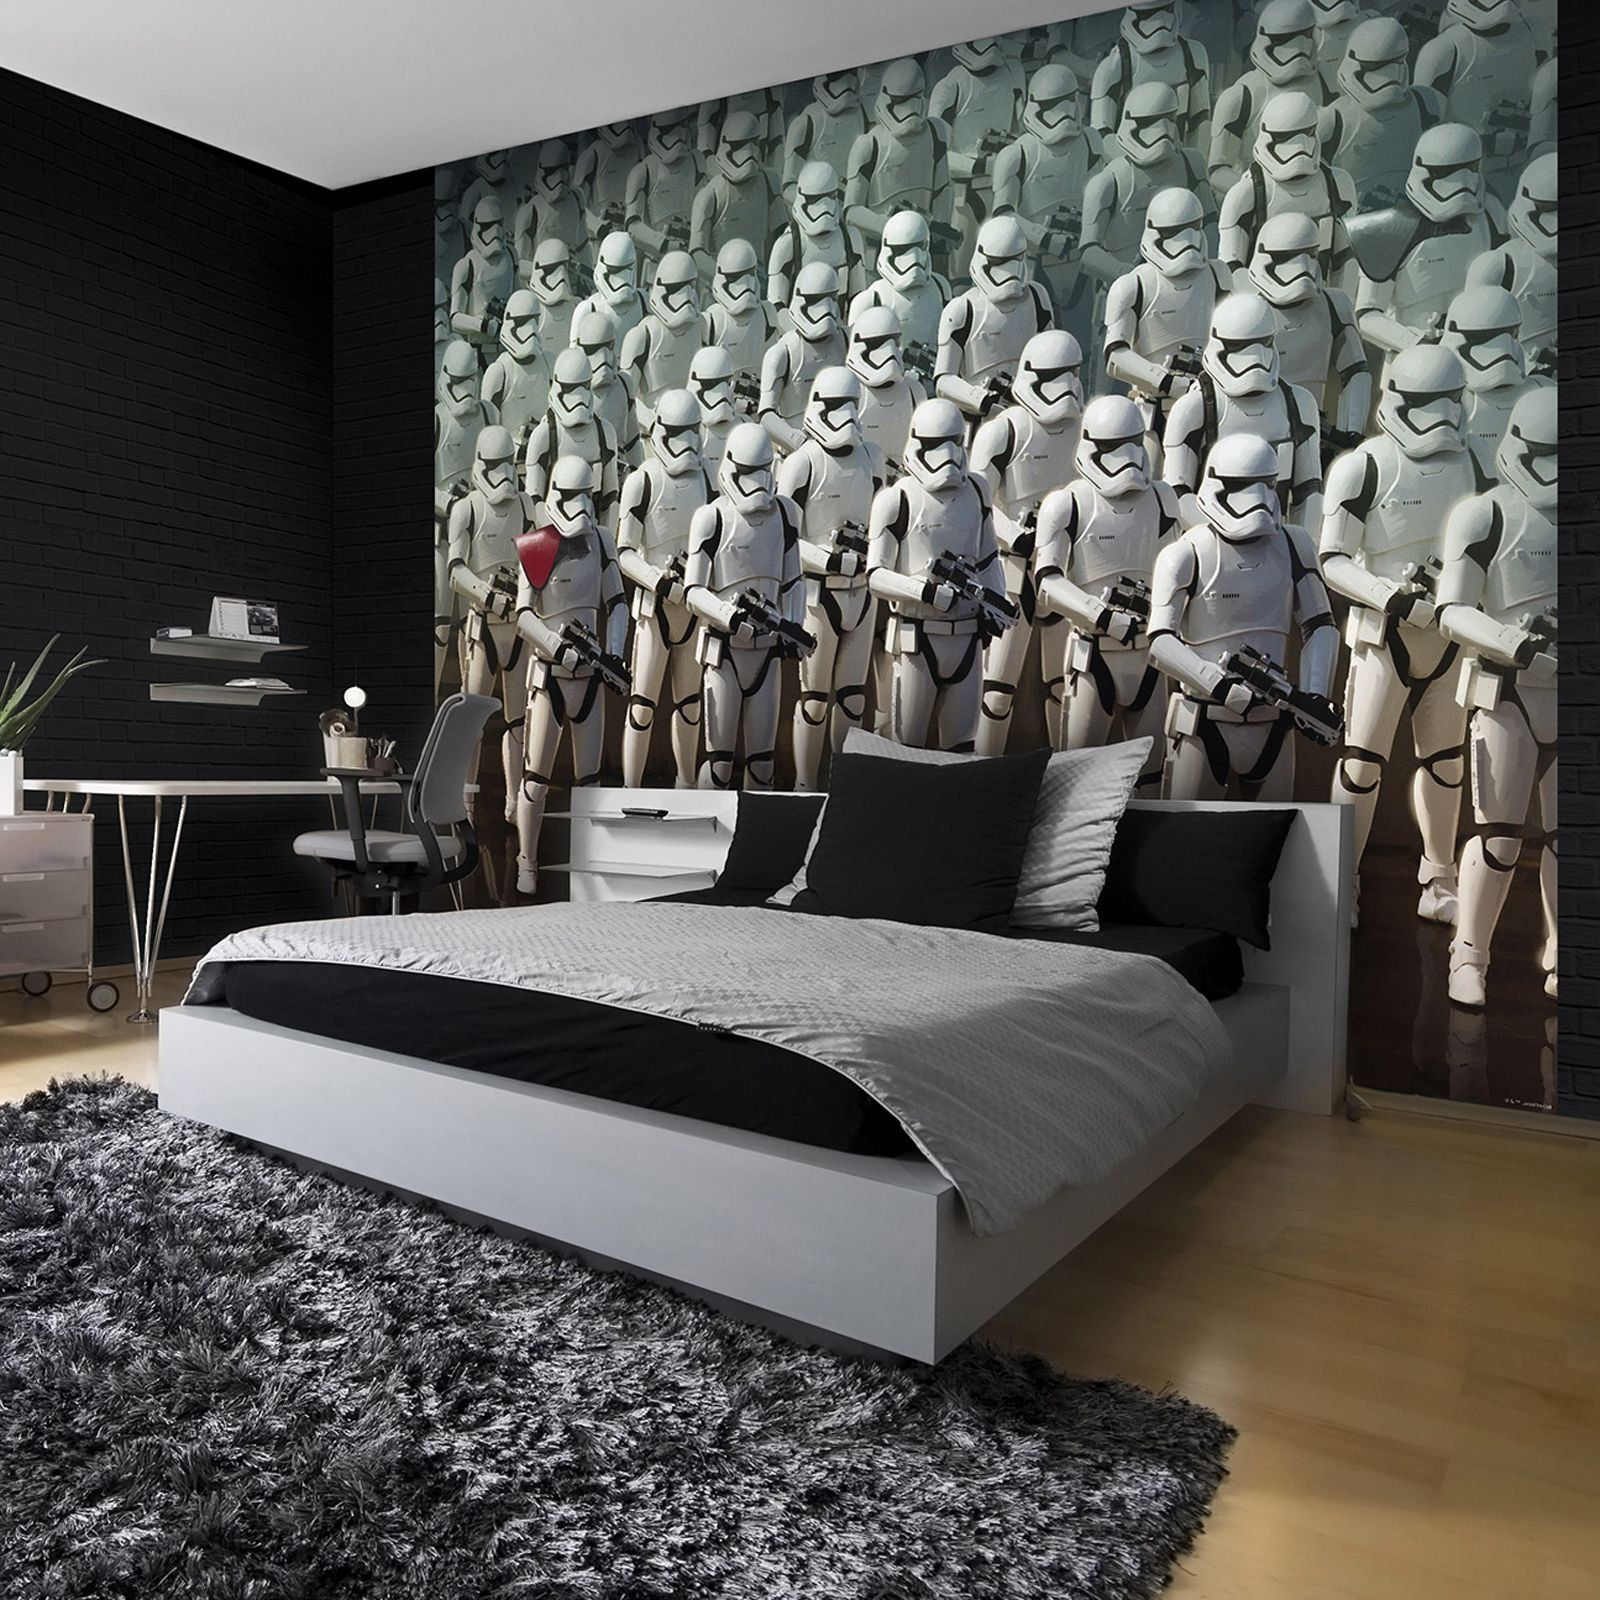 Attrayant Star Wars Stormtrooper Wall Mural   Dream Bedroom U2026